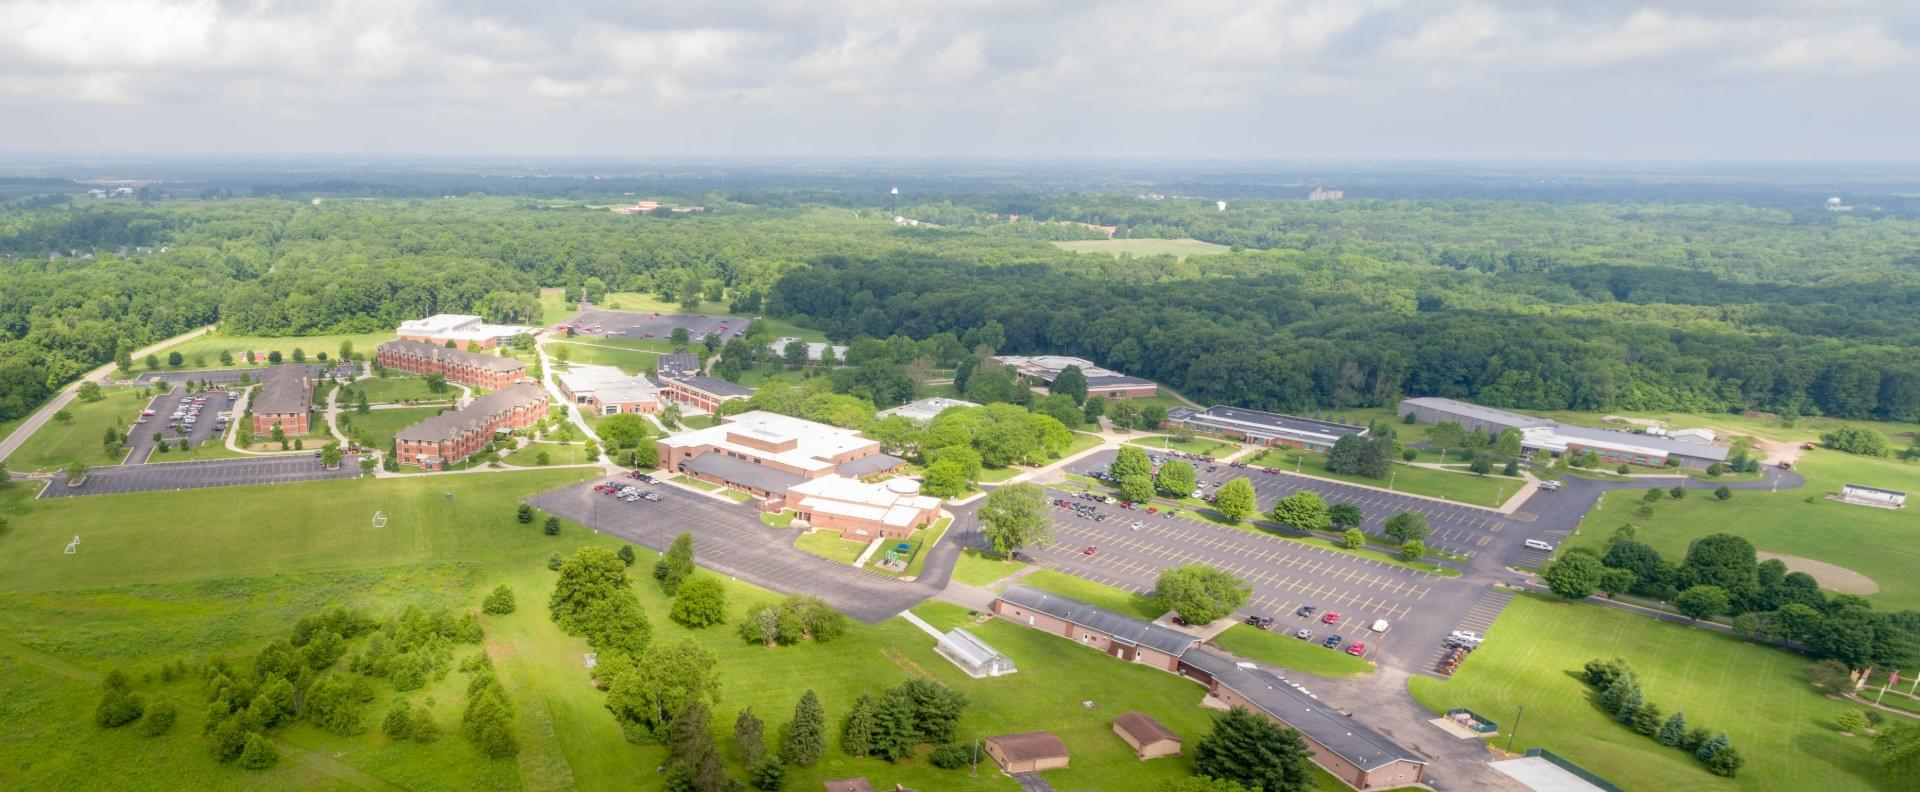 Campus Photos June 2019 06